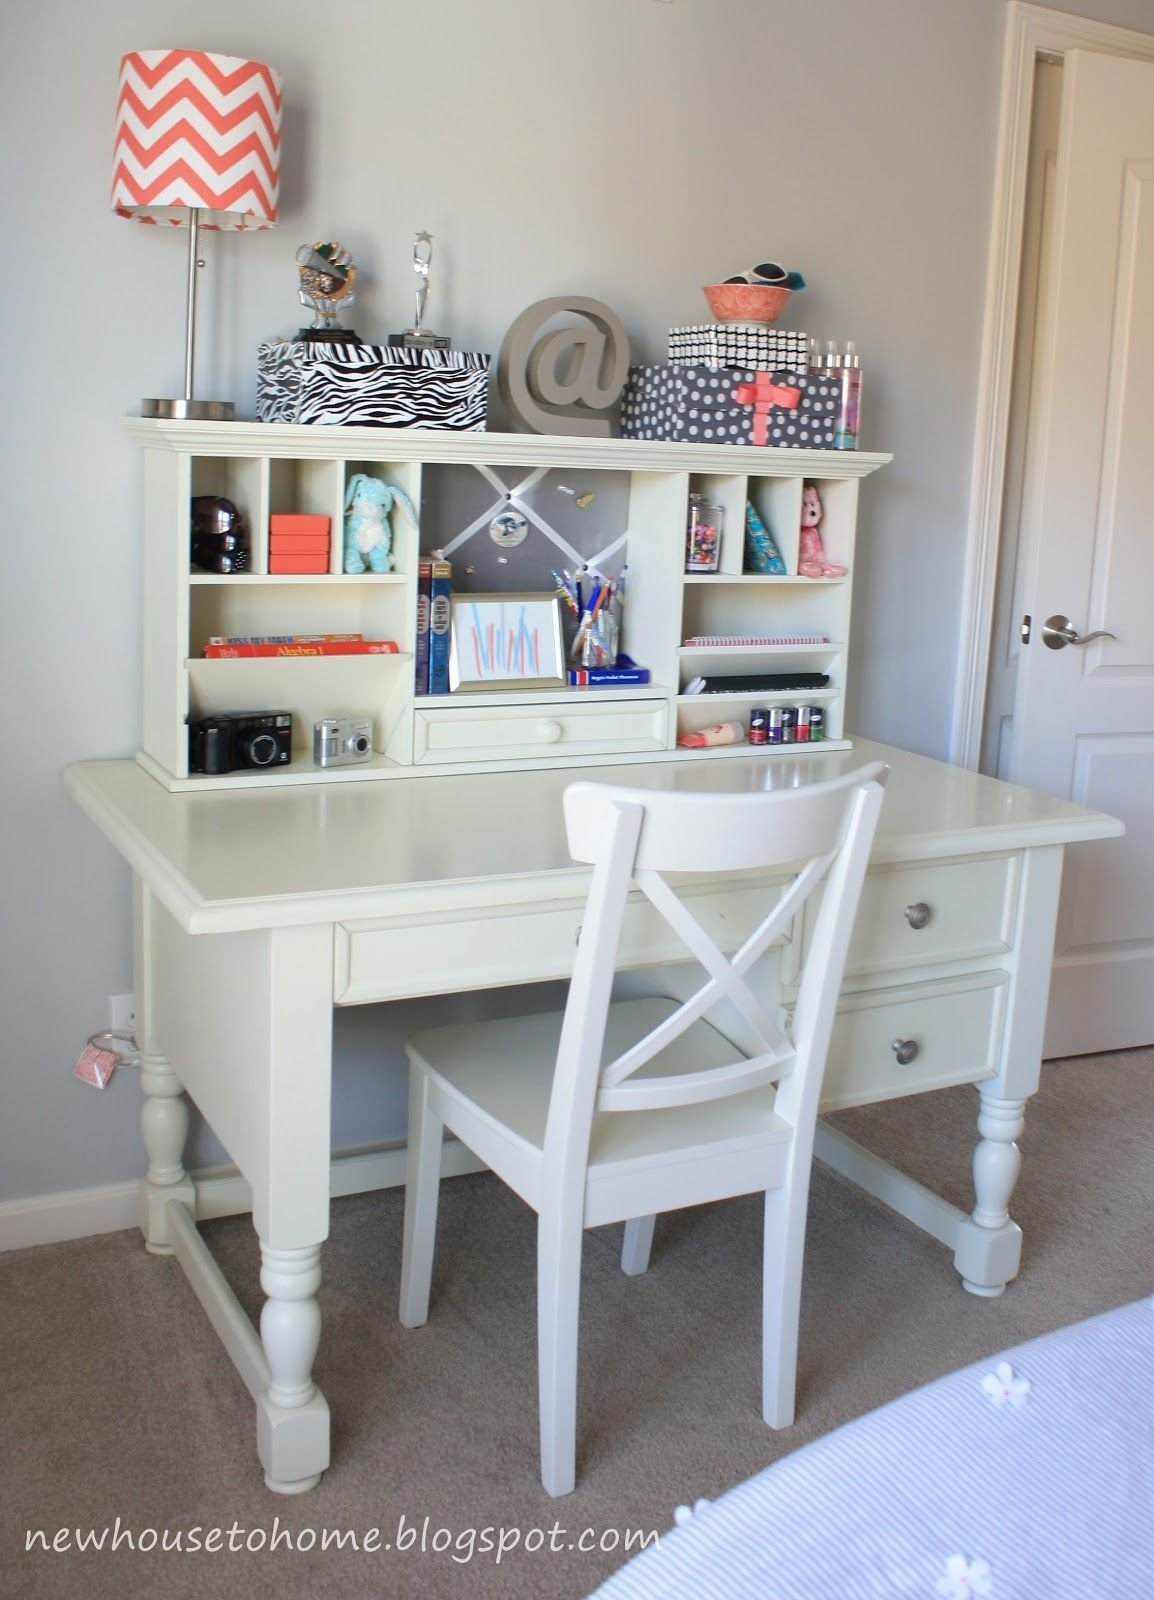 Best Desk For Girls Room Every Teenage Girl Needs A Place To Be Creative And Do Her Homework With Pictures